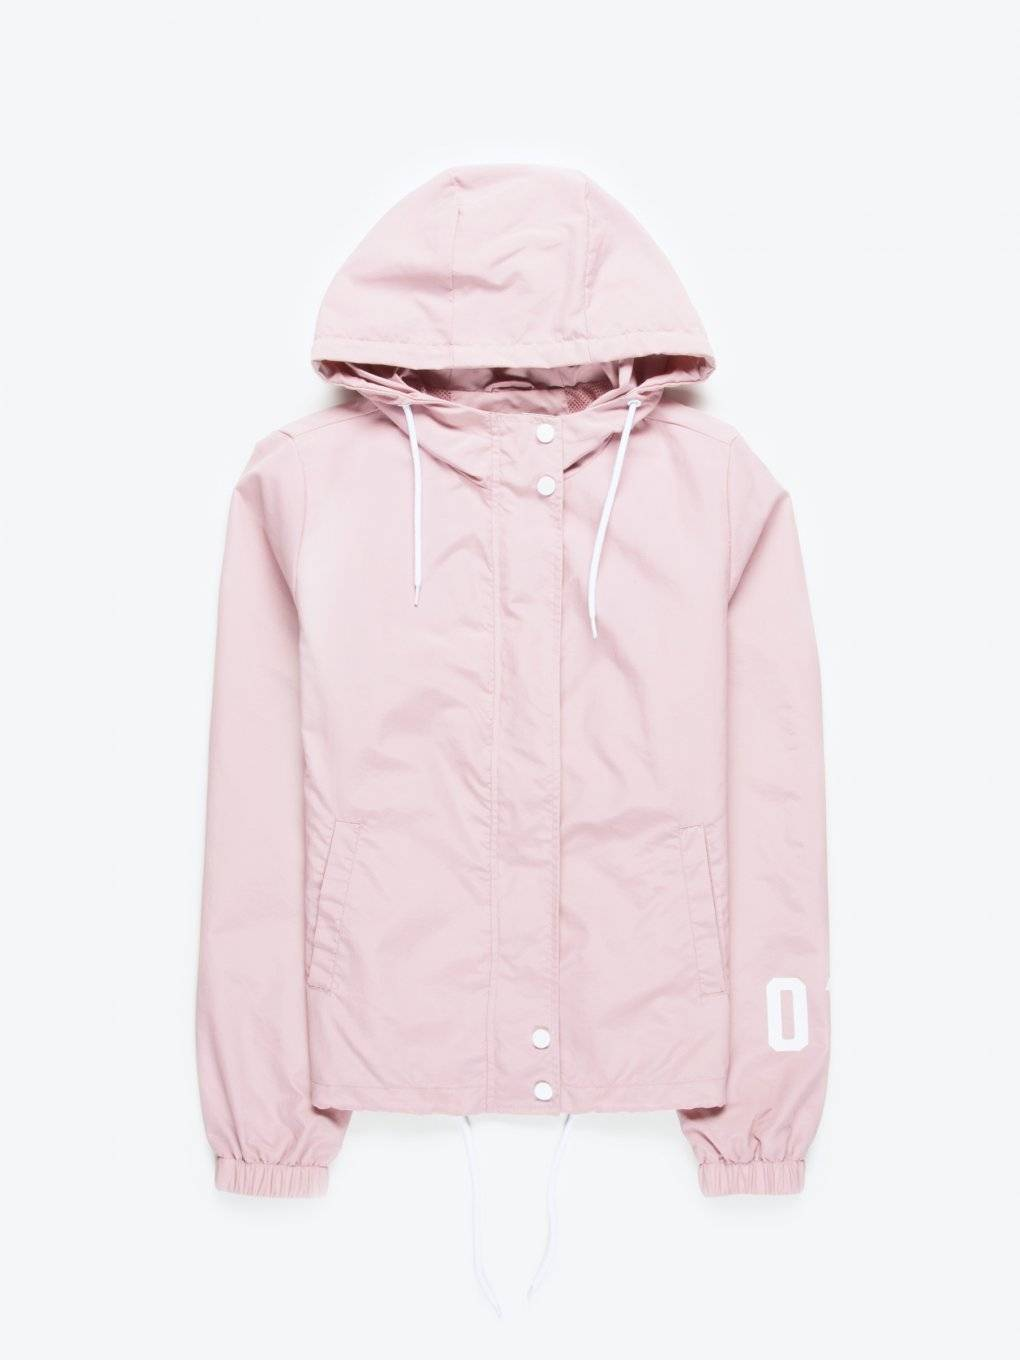 Hooded jacket with message print